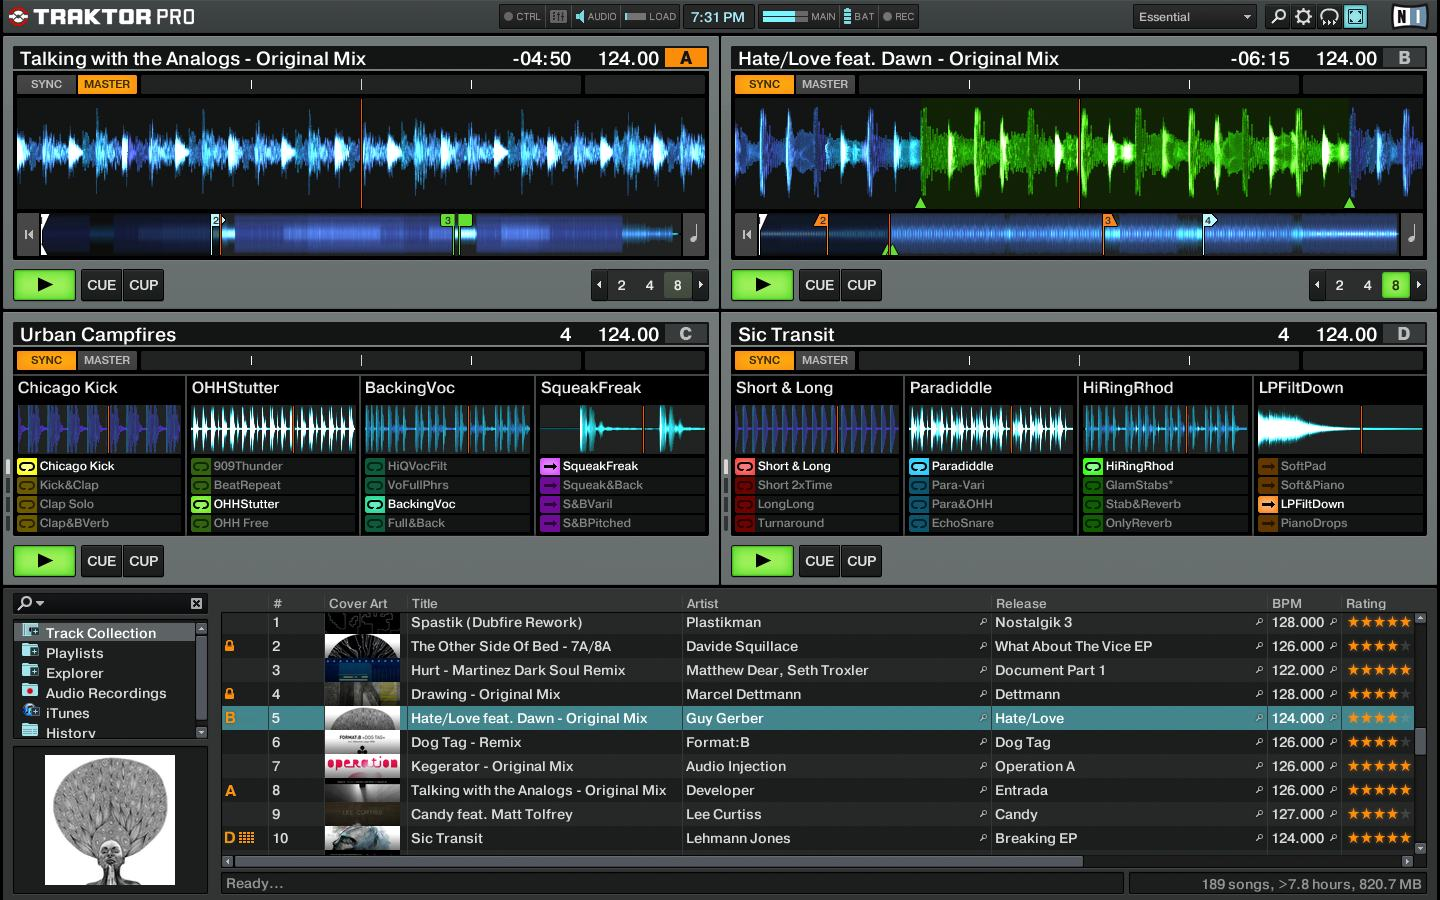 Traktor dj studio 2.5 3 keygen download